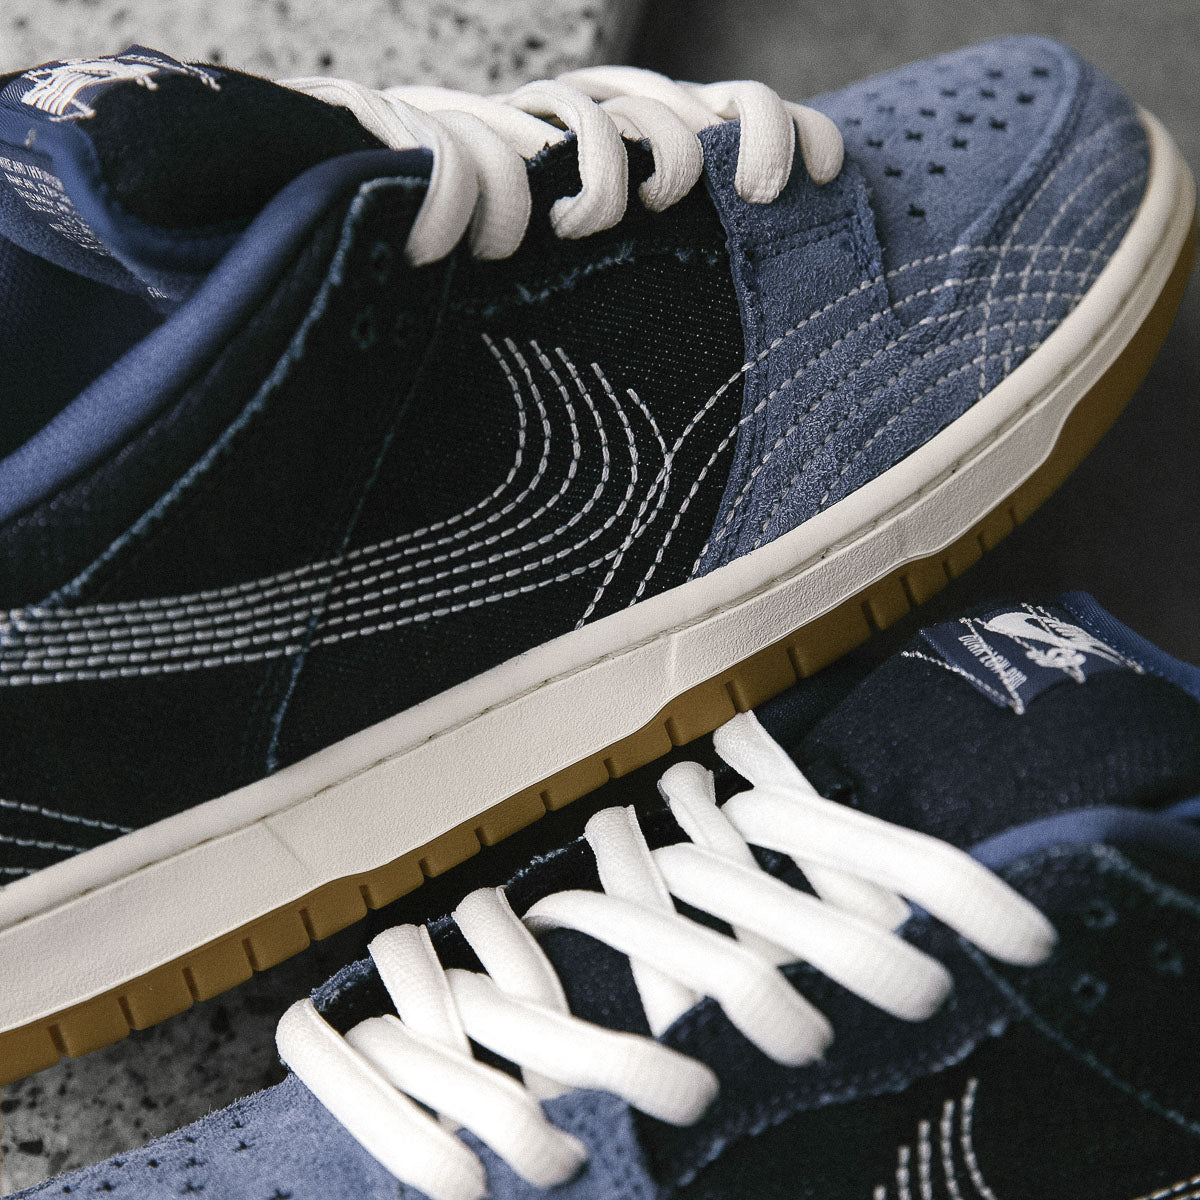 Nike SB Dunk Shoes at Flatspot